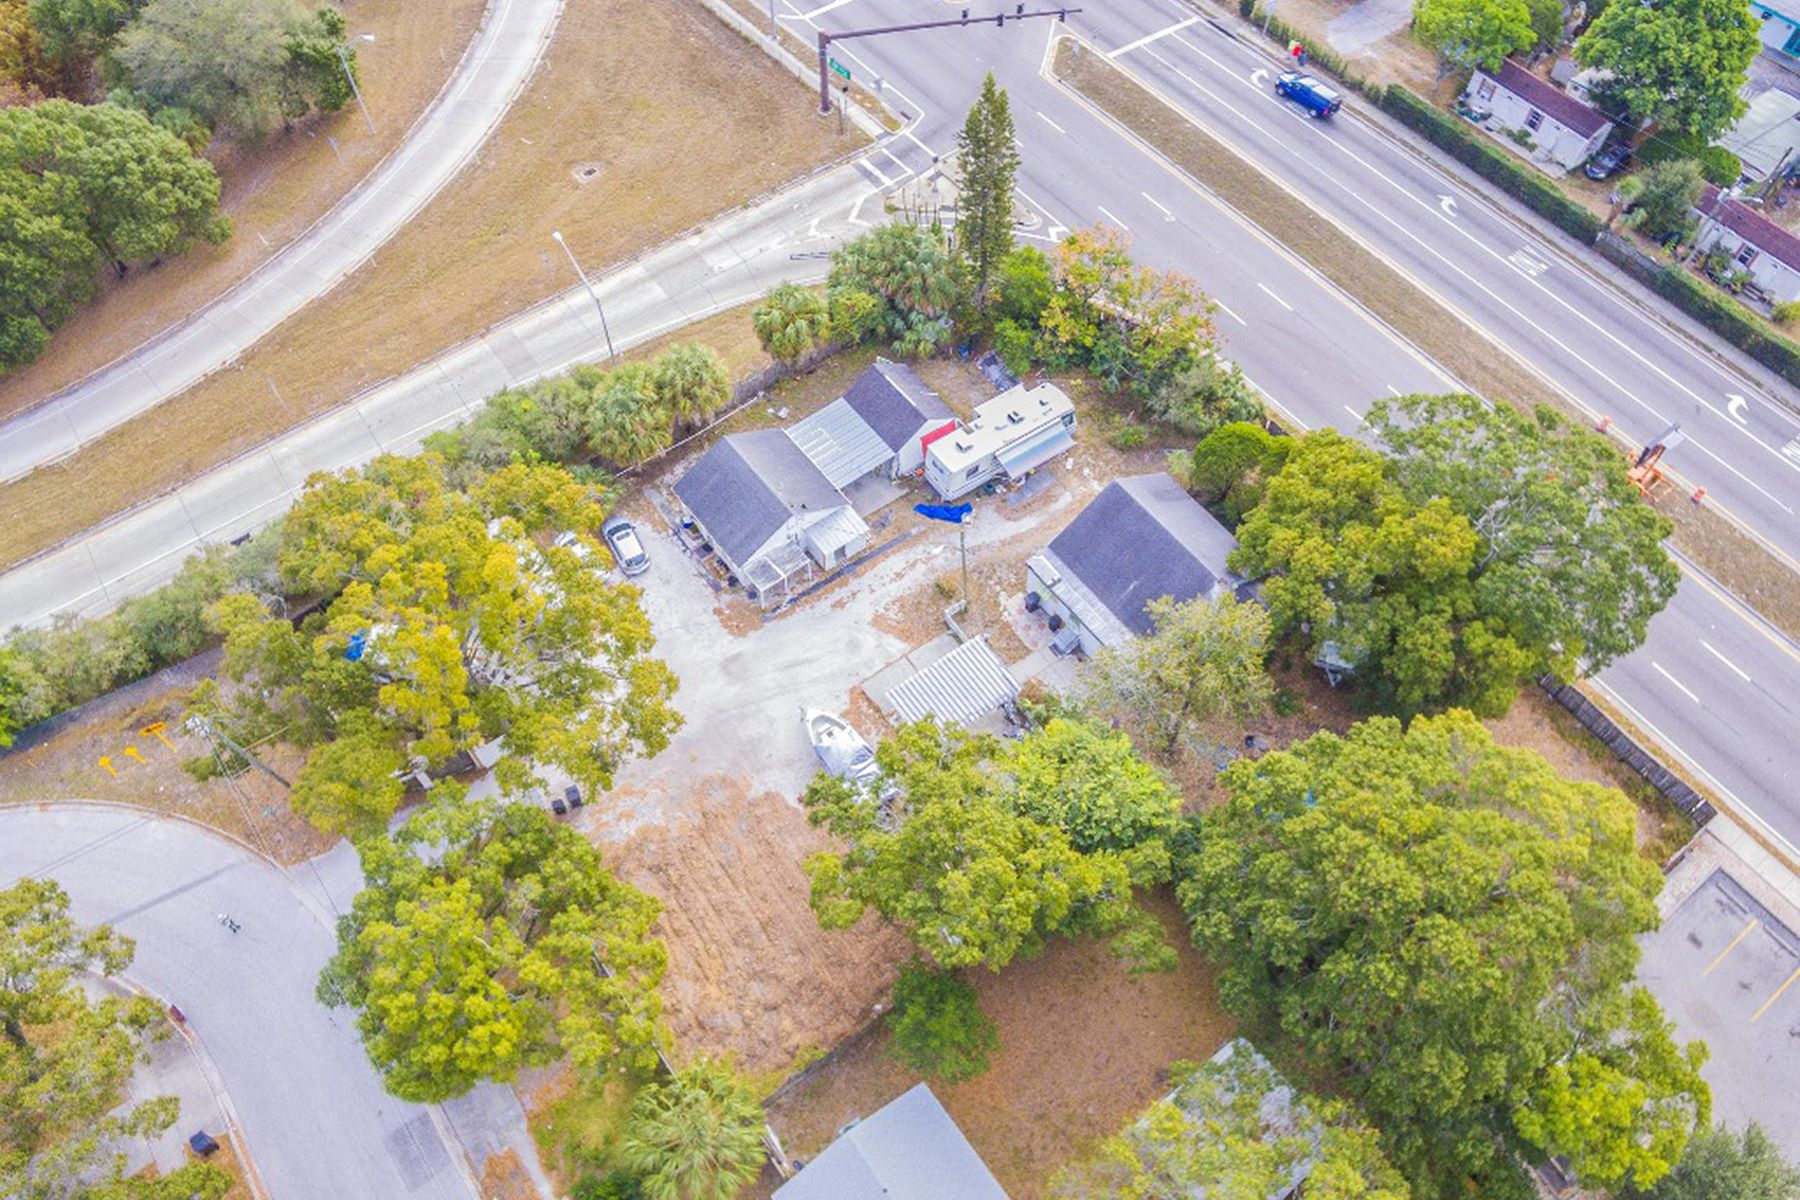 Land for Sale at SAINT PETERSBURG 2510 55th Ave N 2, St. Petersburg, Florida 33714 United States